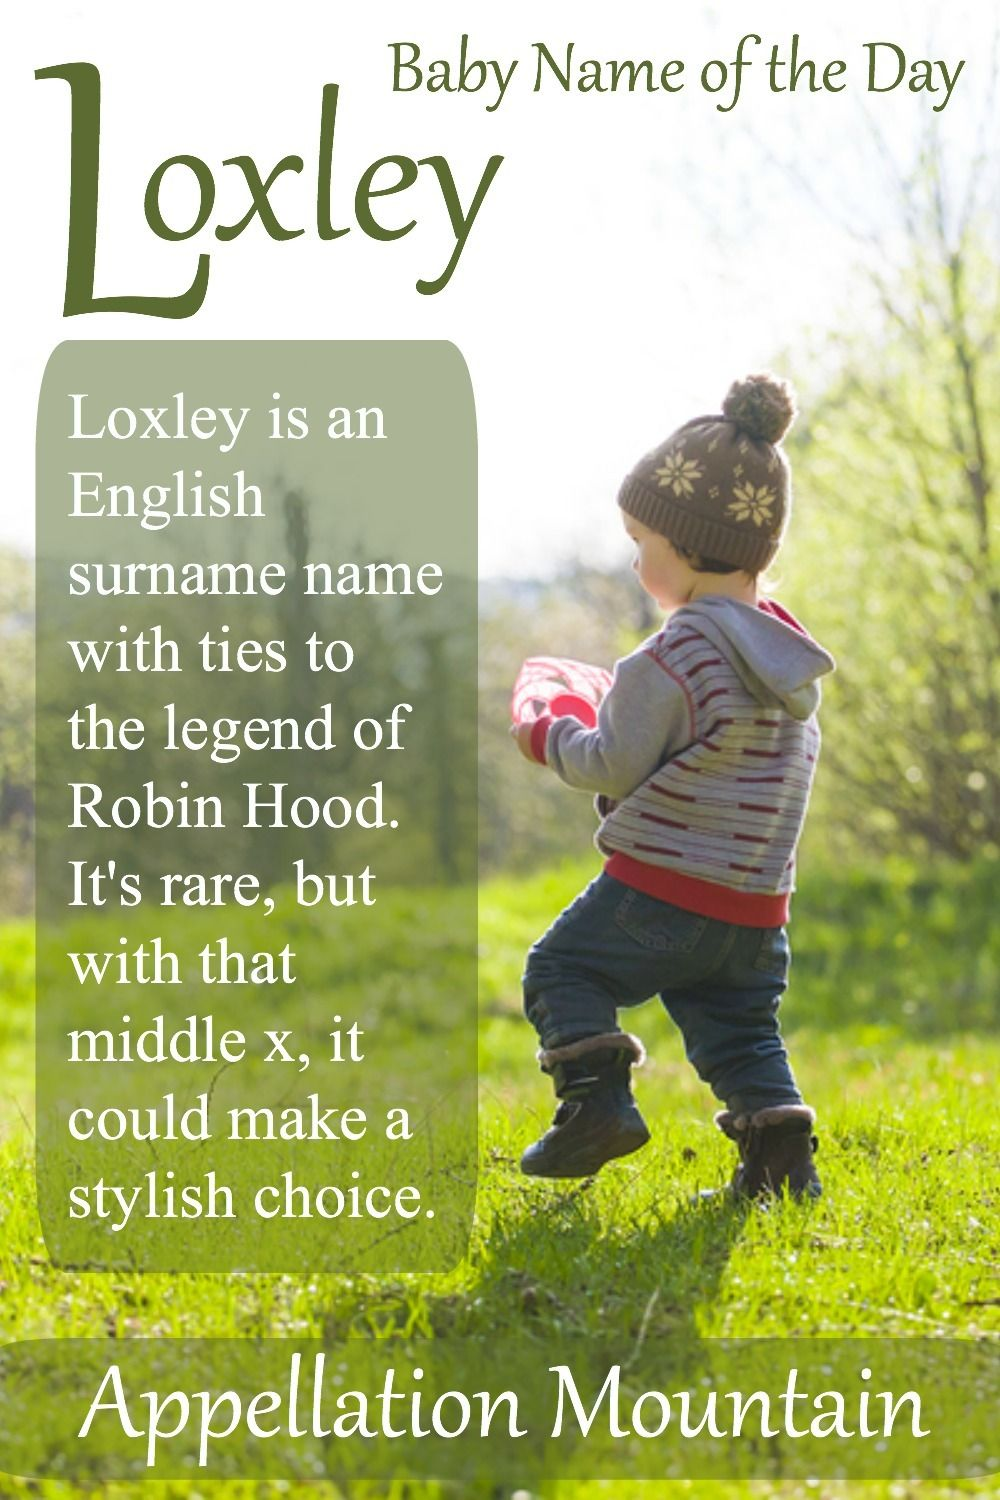 New baby stylish names recommend dress in winter in 2019